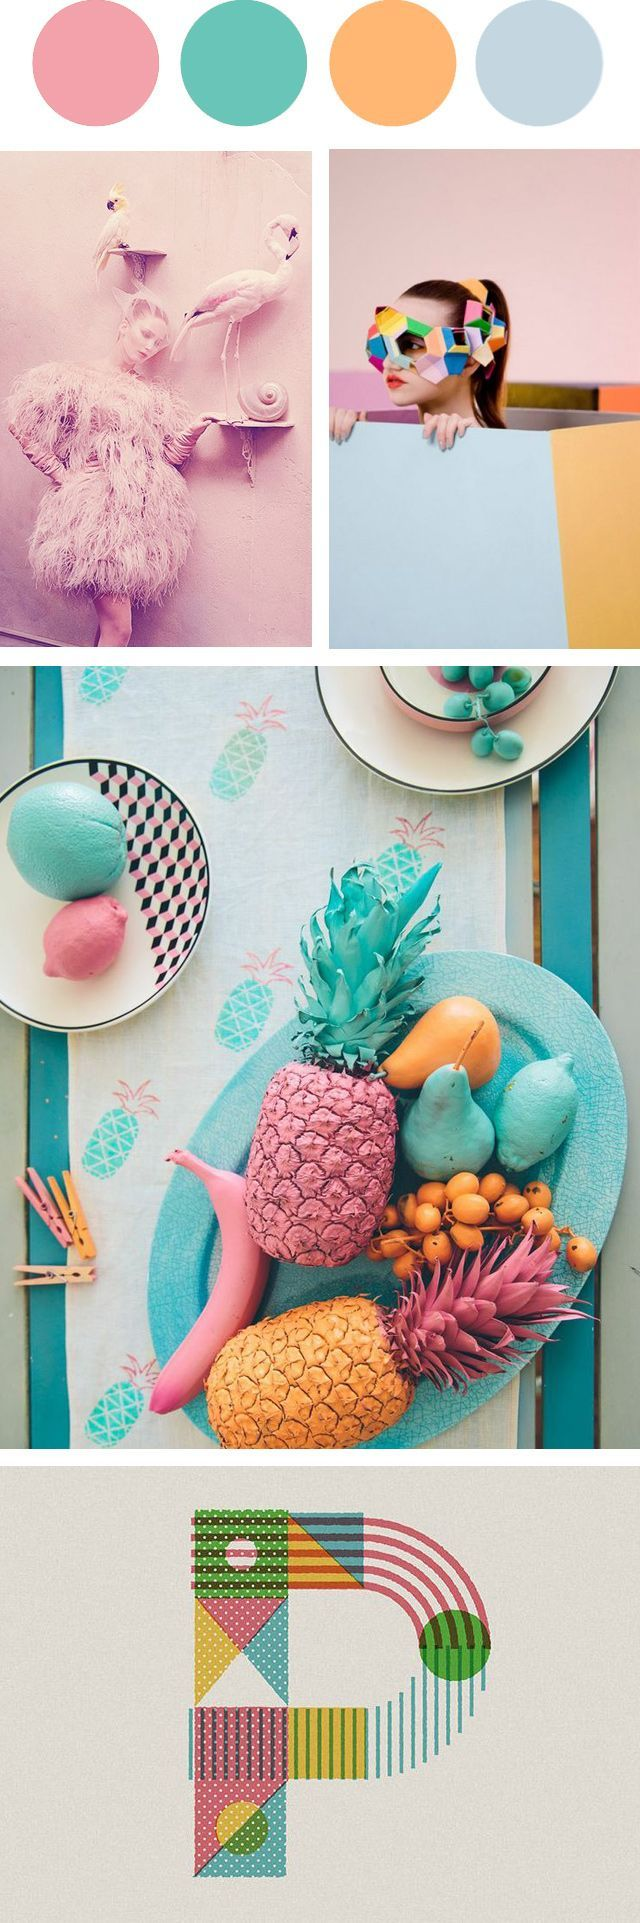 color story #46 http://theglitterguide.com/2014/05/09/kelly-lanza-of-studio-diys-5-things-to-try-this-weekend/?slide=4